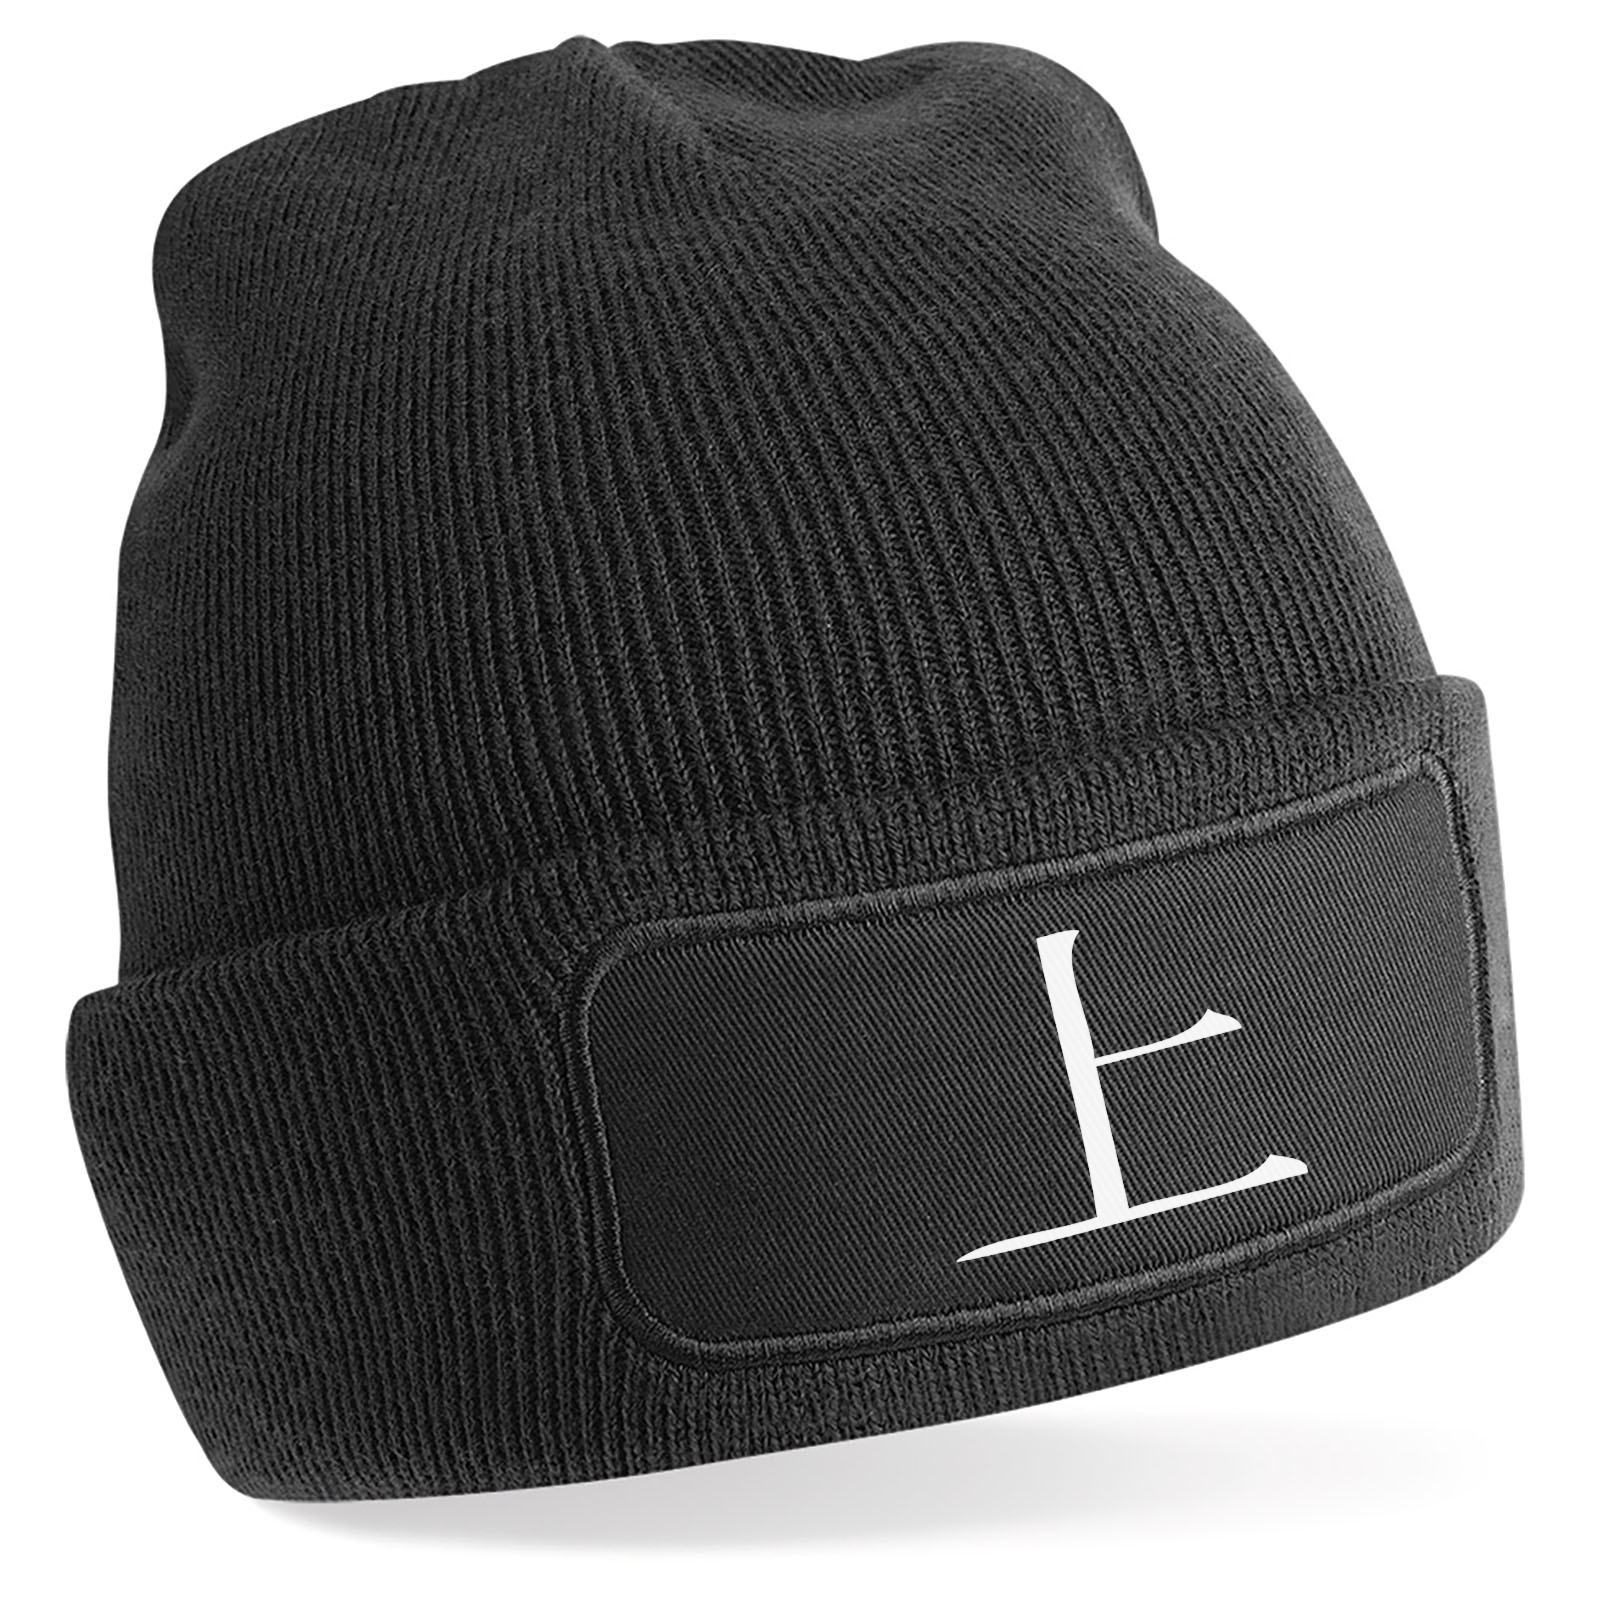 Picture of Above Kanji Logo Anime Manga Beanie Hat